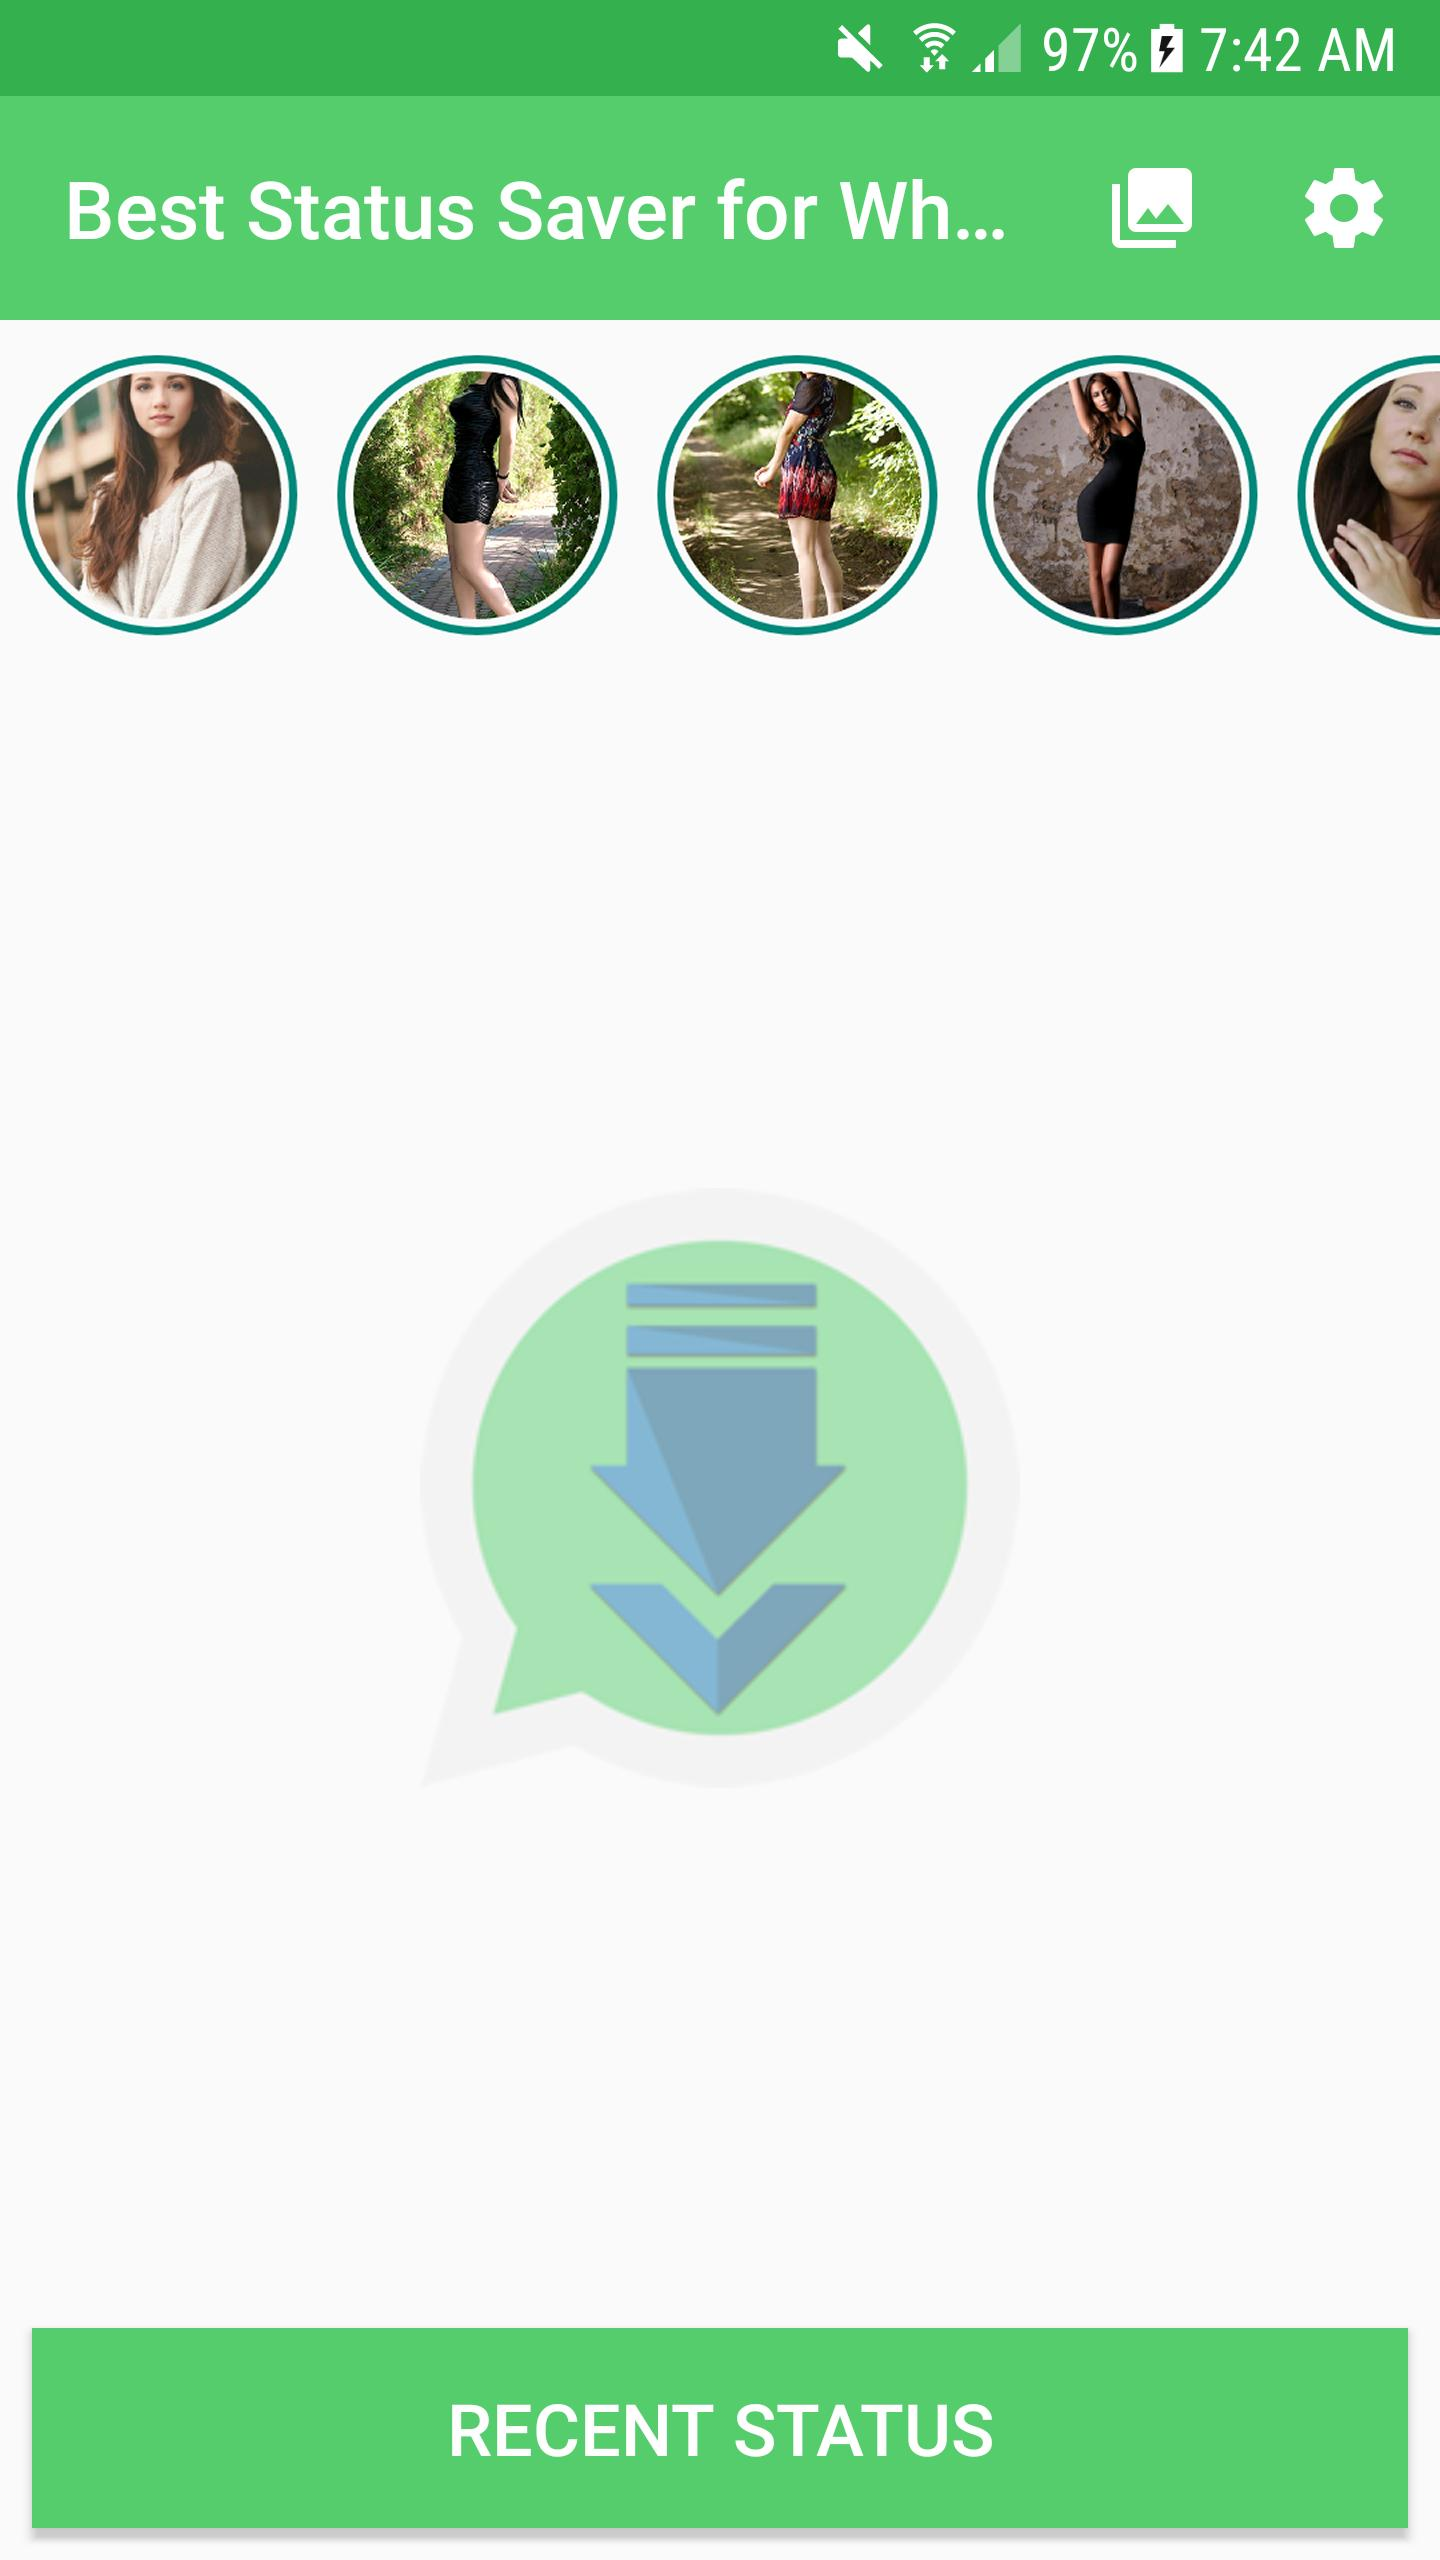 Best Status Saver For Whatsapp For Android Apk Download